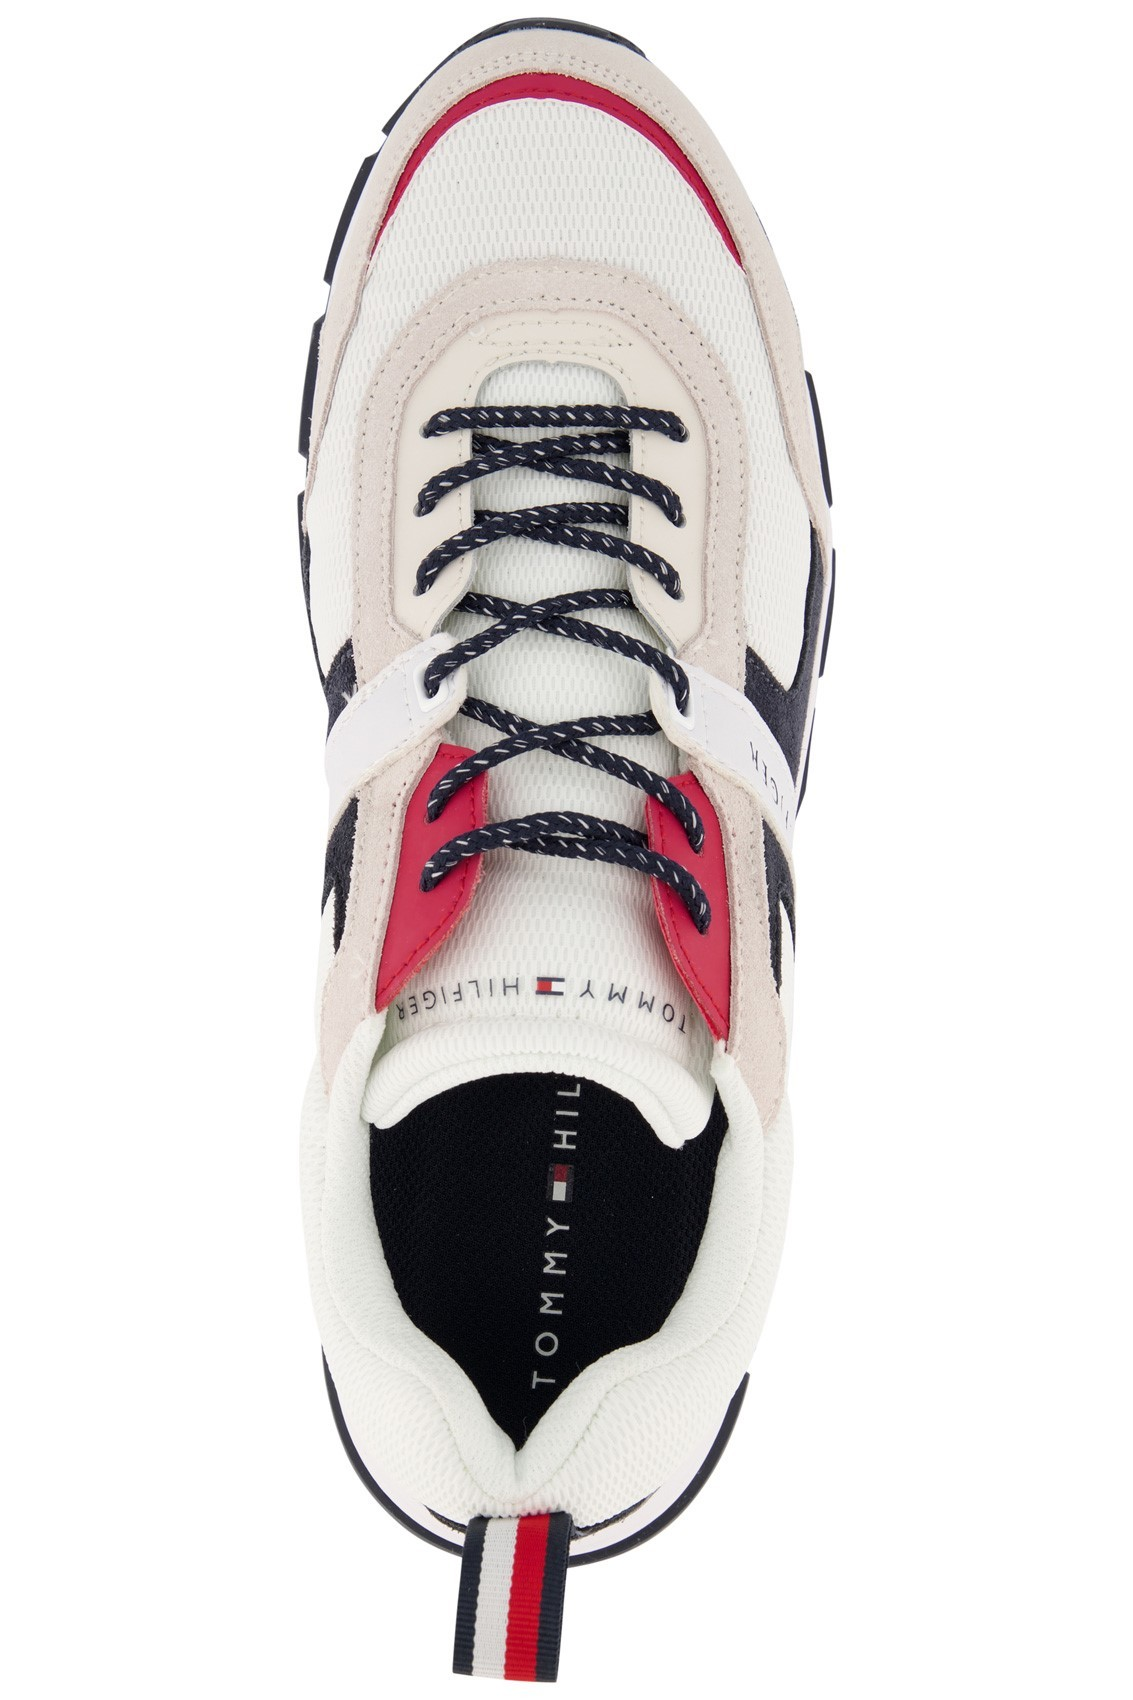 Tommy Hilfiger sneaker laag model navy rood wit